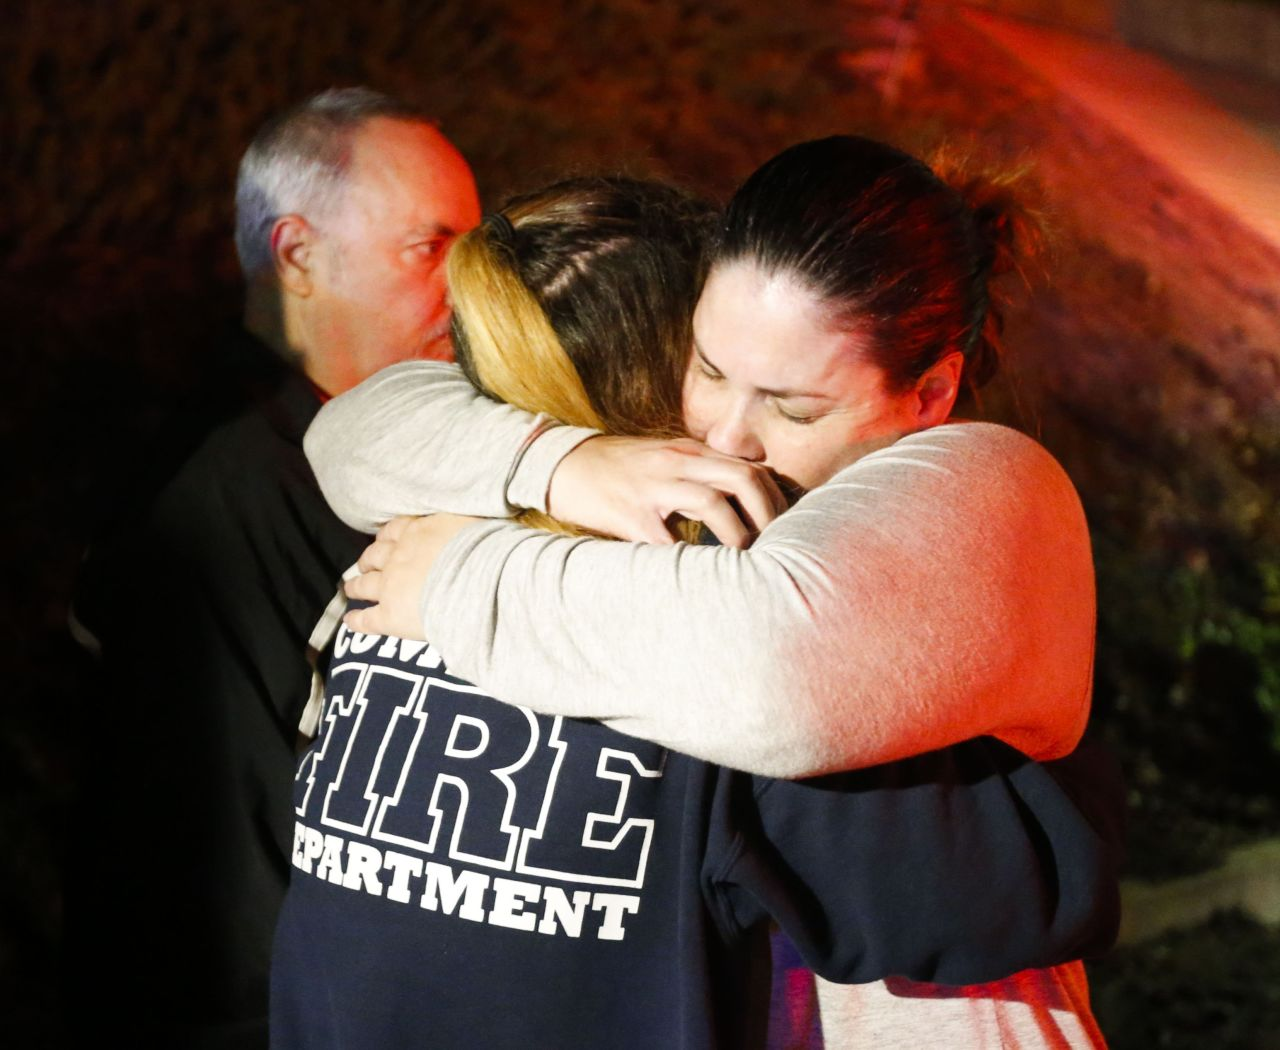 California bar shooting kills 12